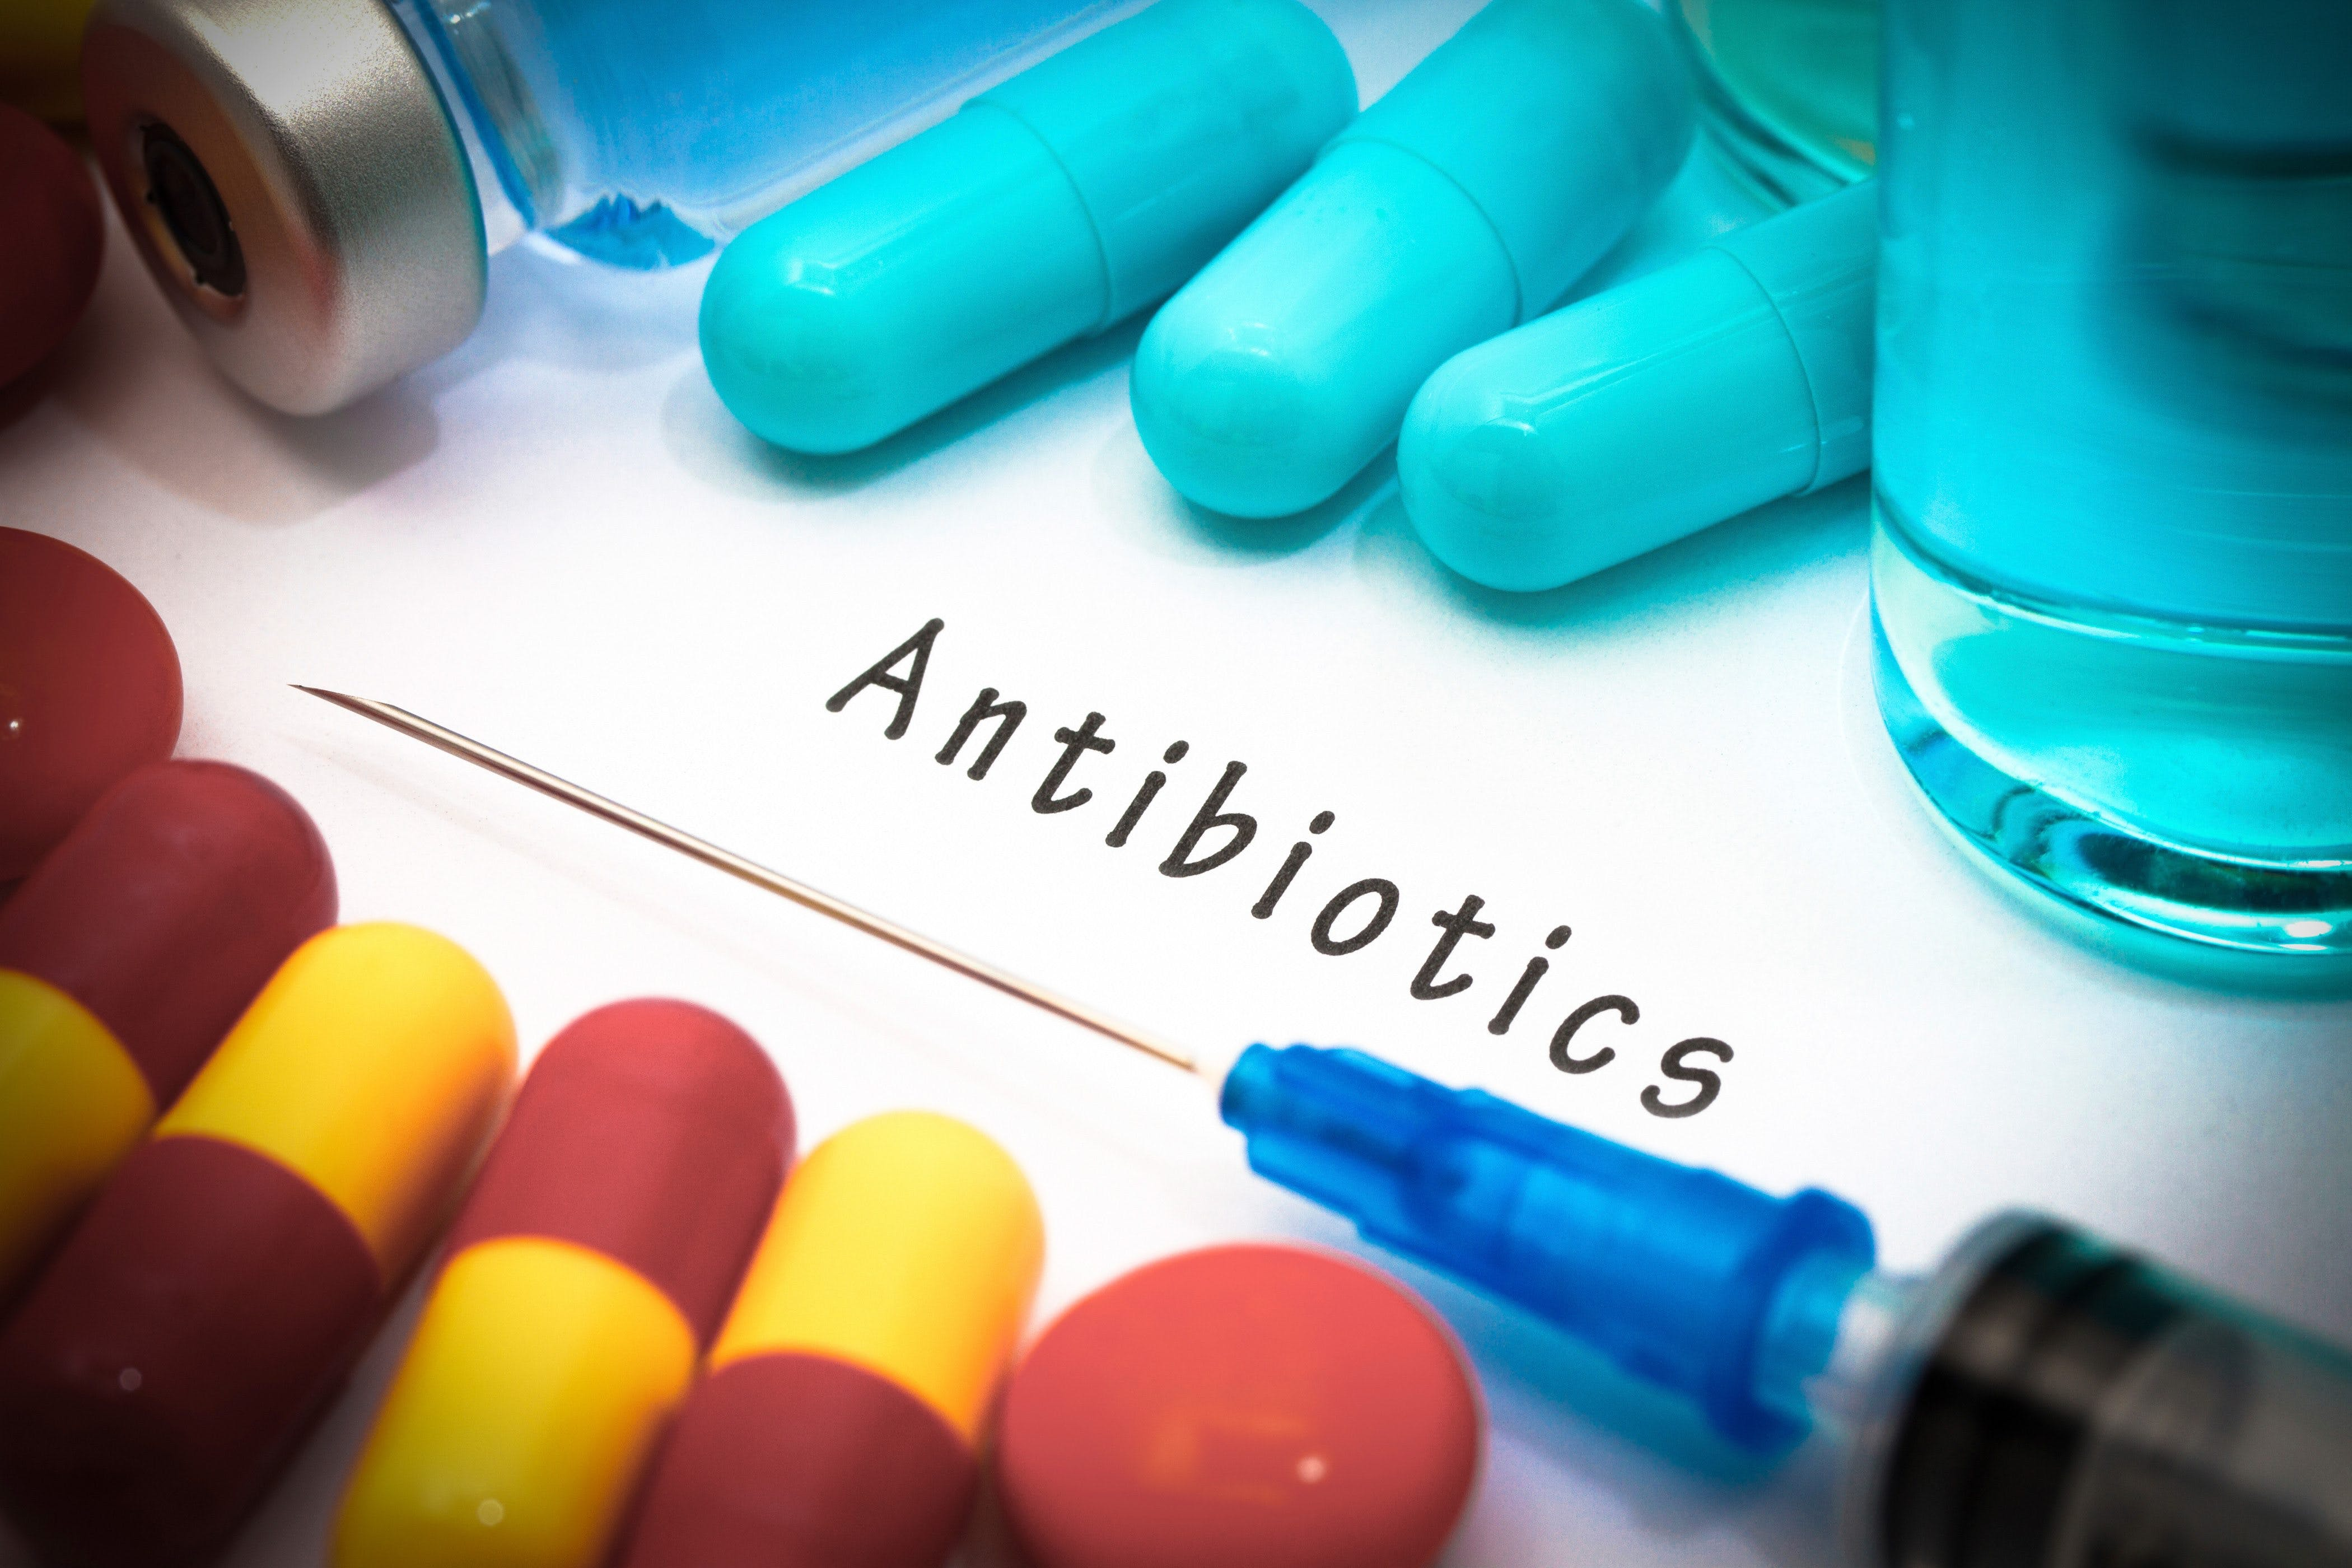 How to Use Antibiotics: Why Less is More